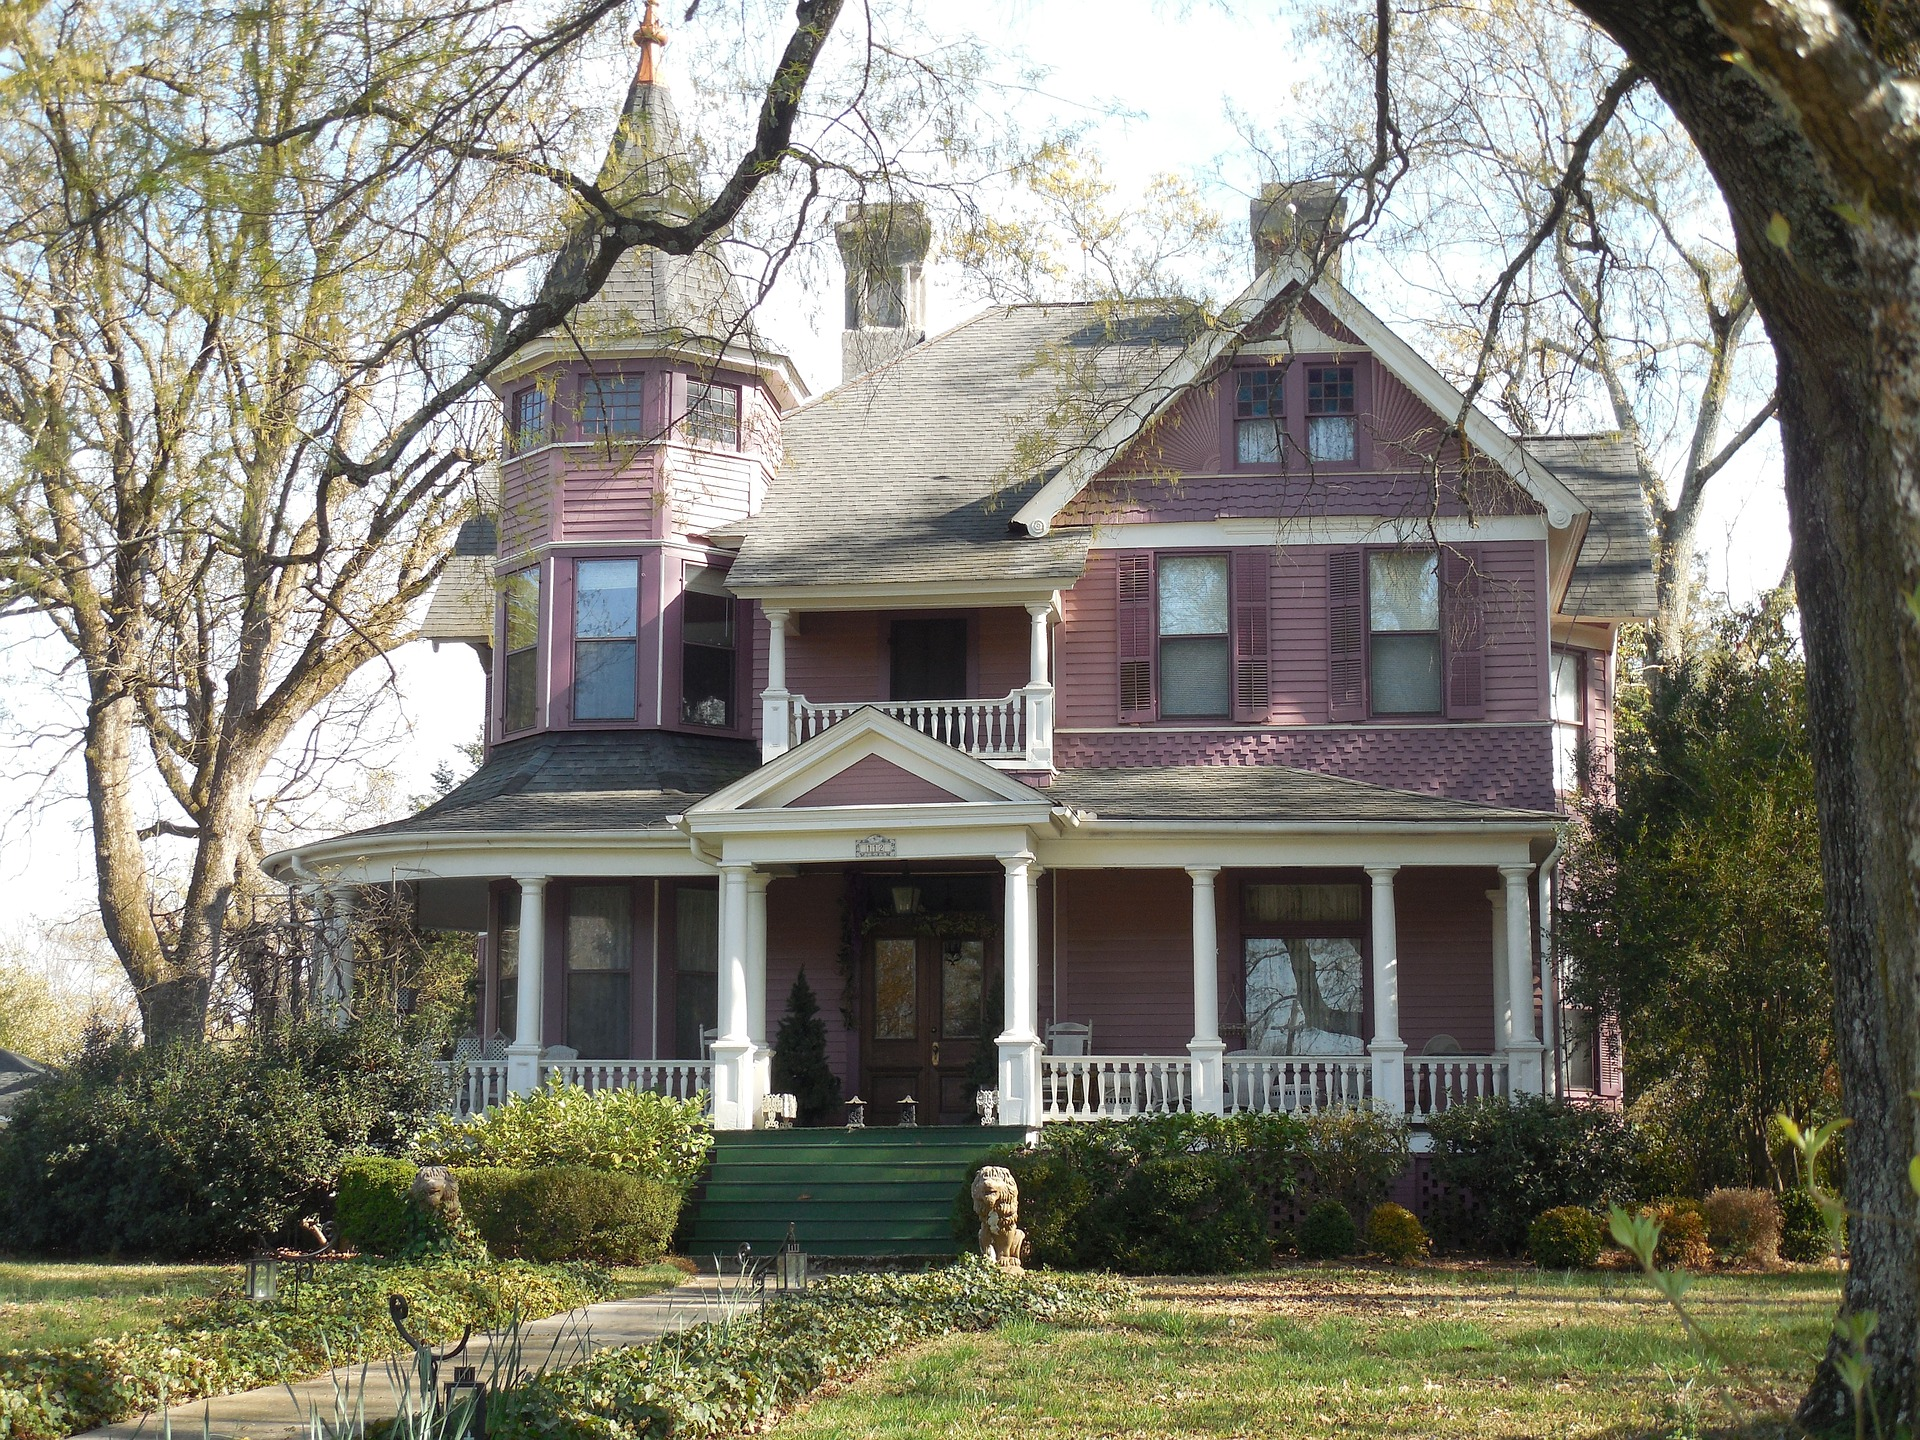 Including Monuments Homes Buildings And Landscapes That Are Historically Significant In The National Historic Preservation Act Of 1966